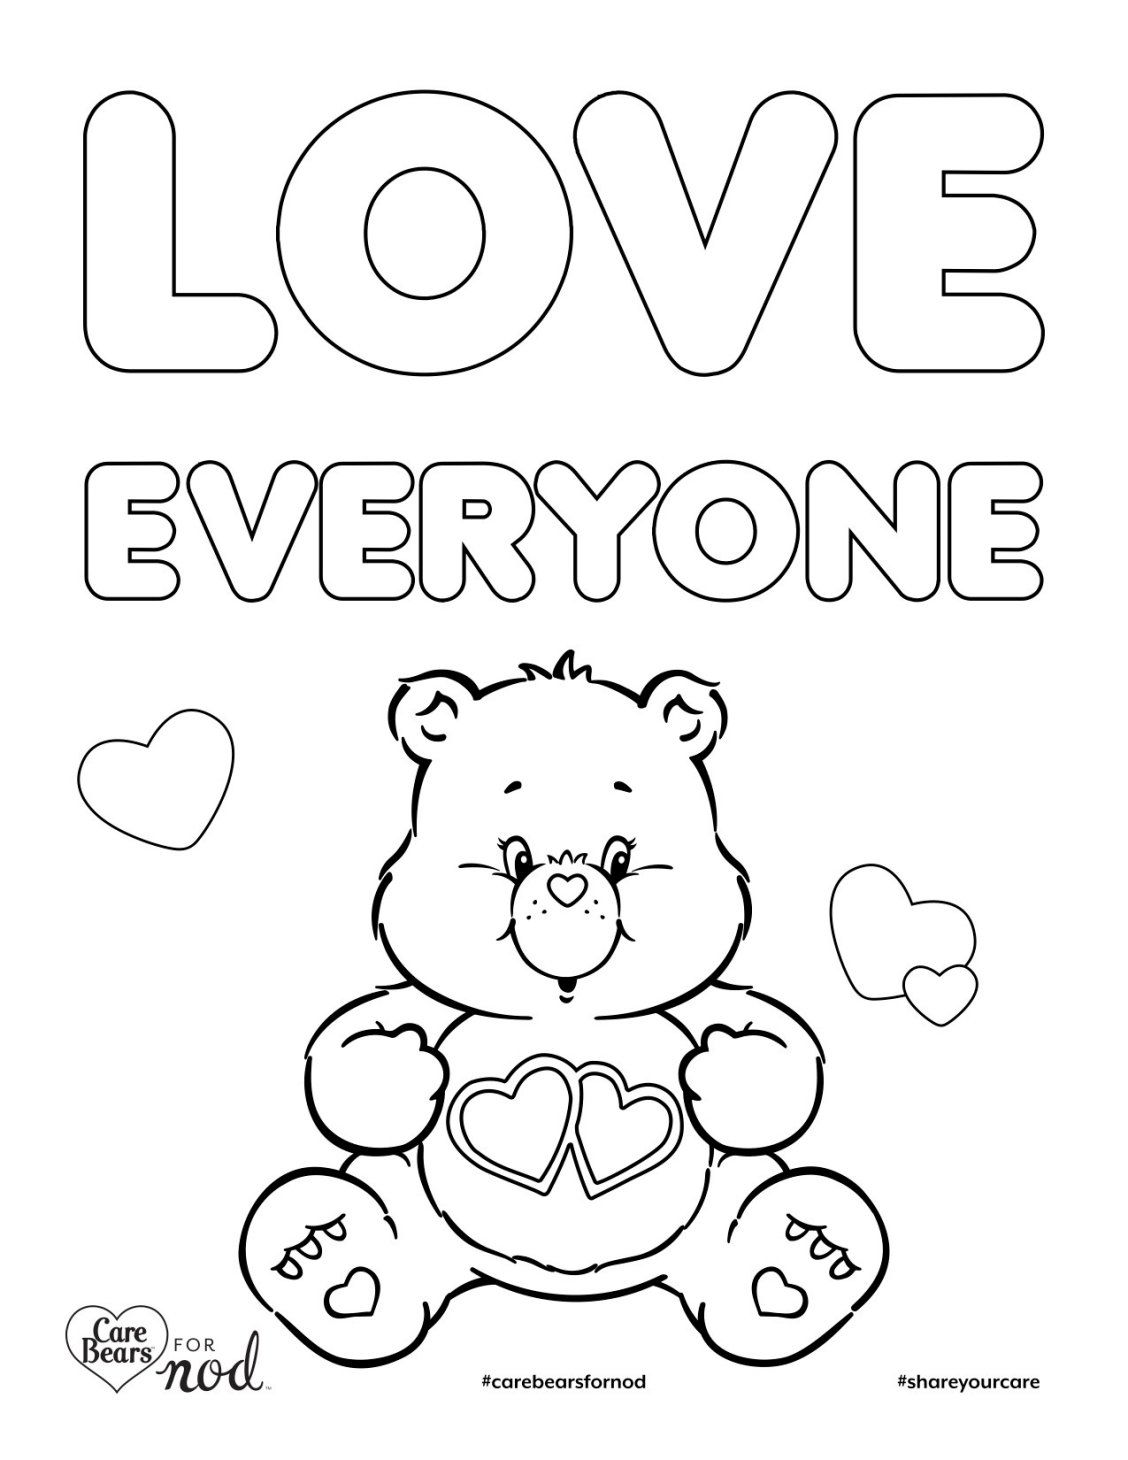 carebear coloring book pages - photo#48